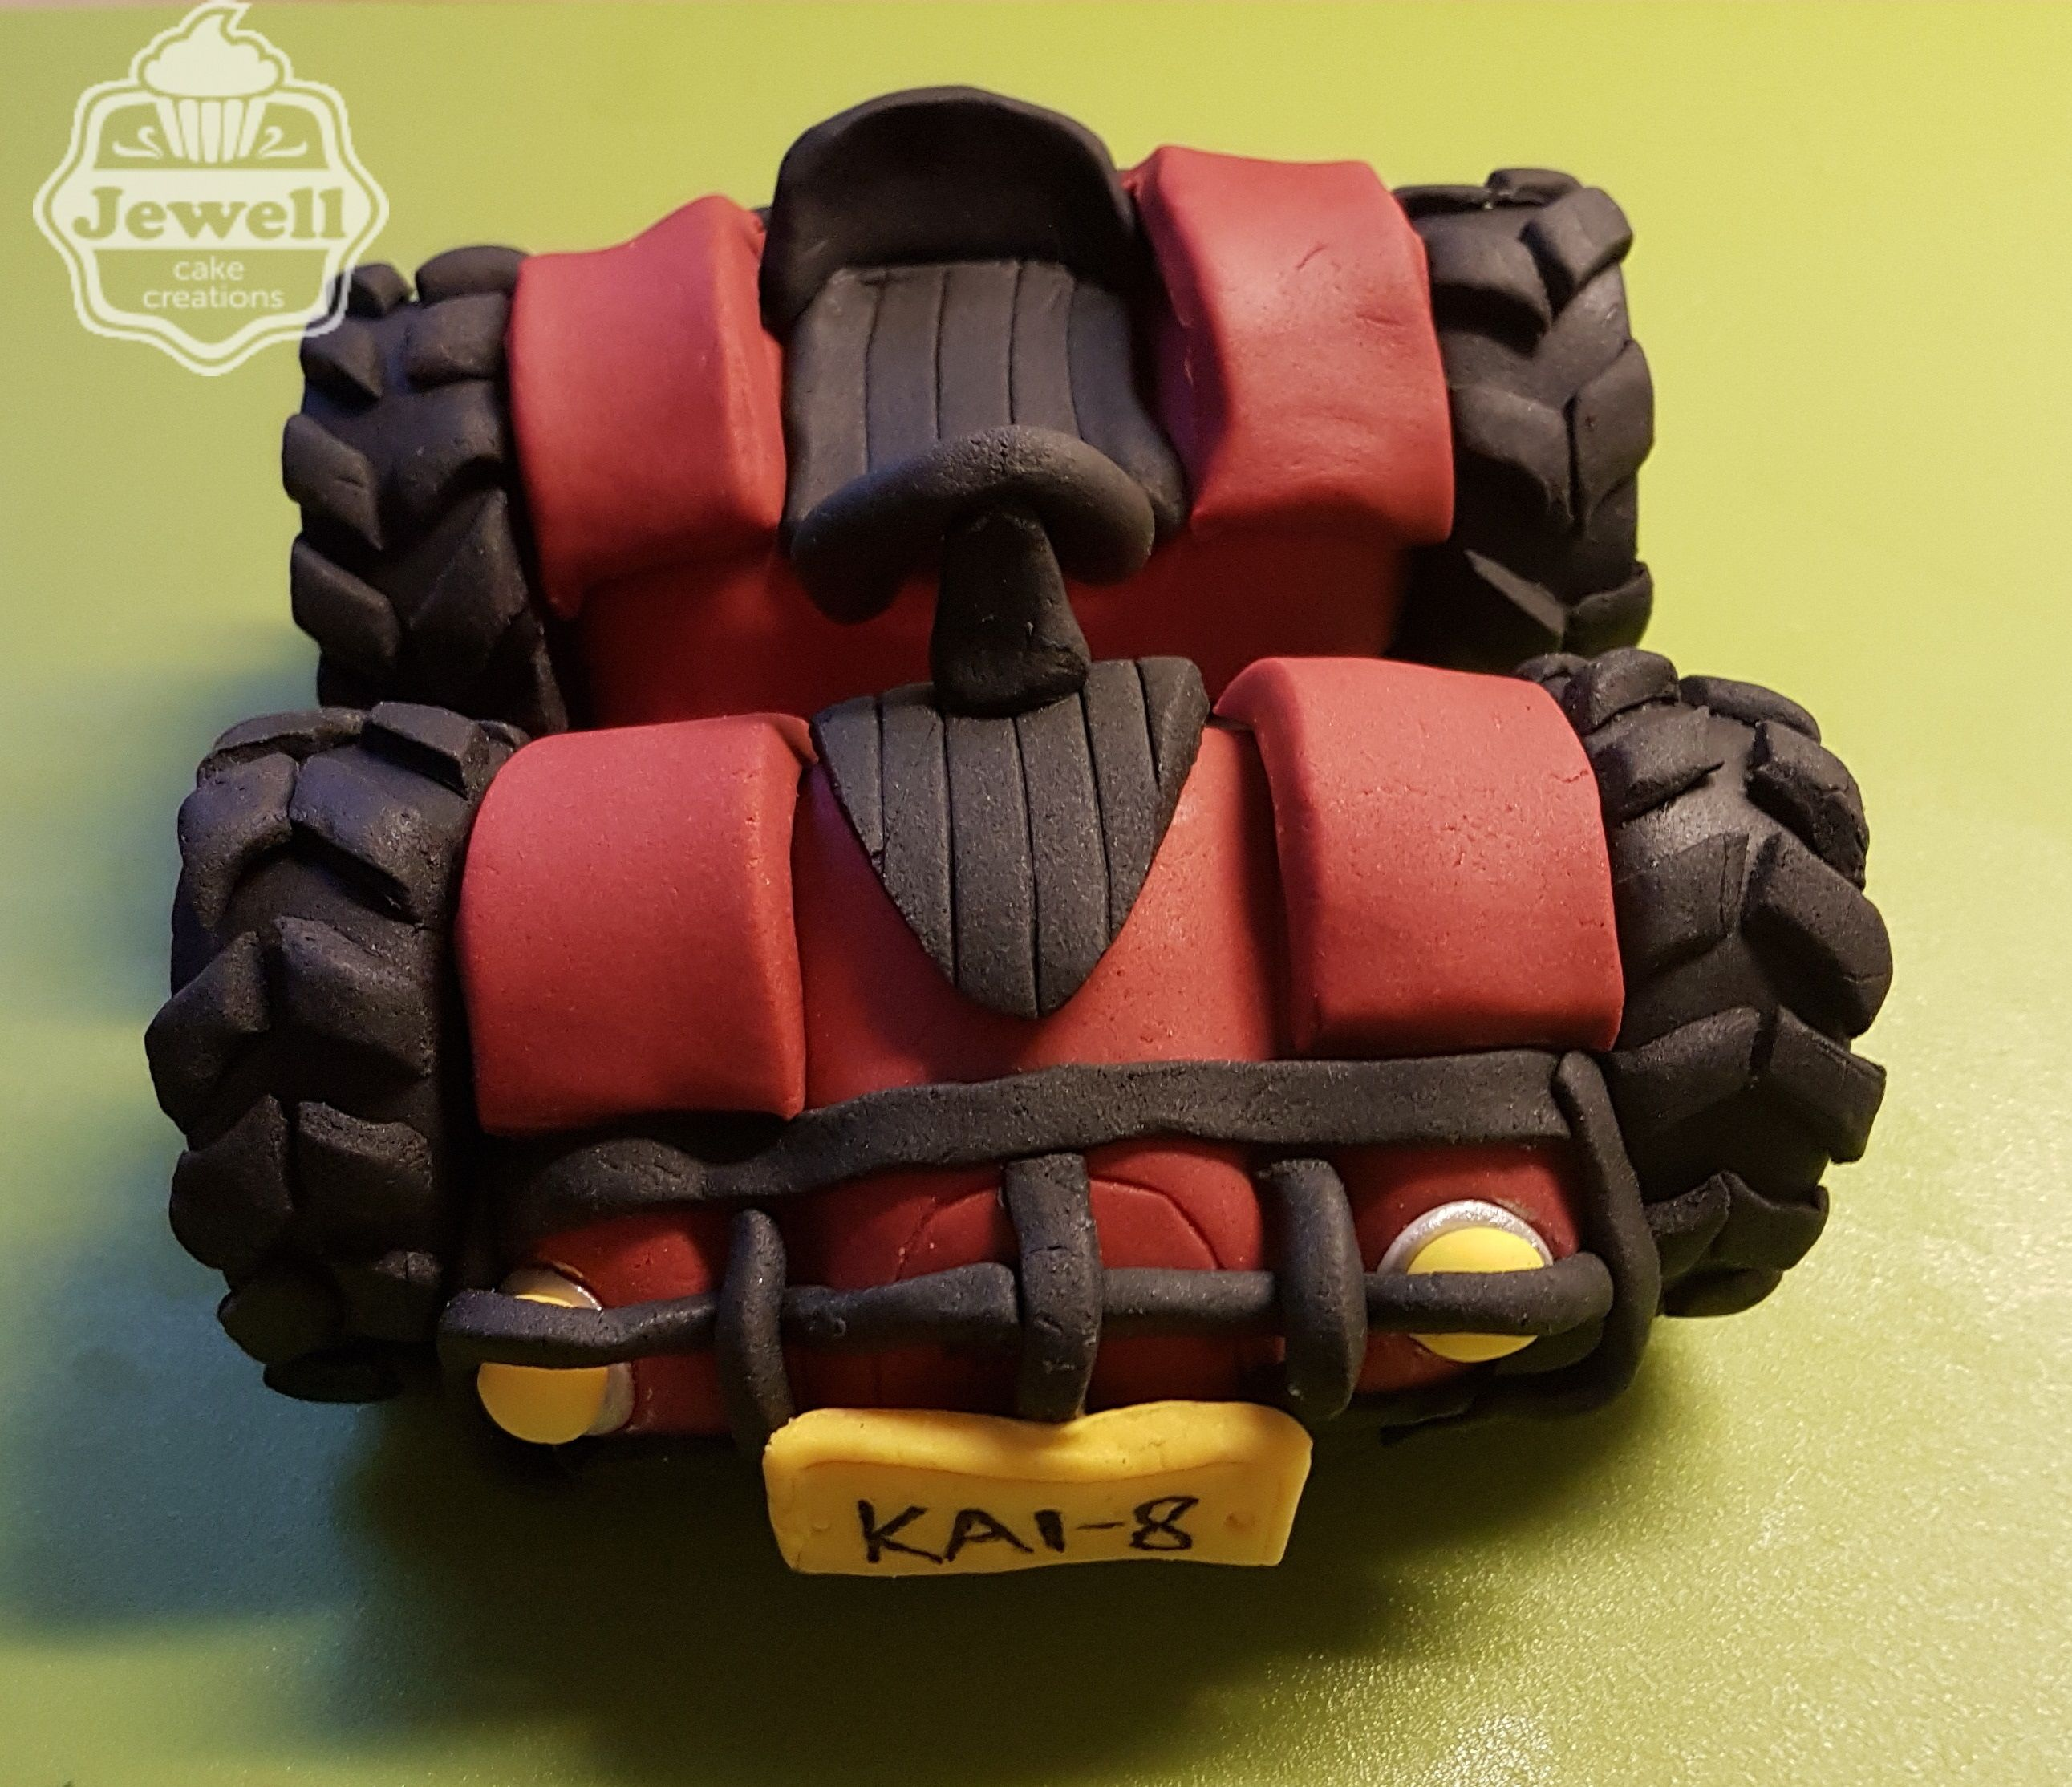 Quad bike birthday cake topper, made out of sugarpaste!